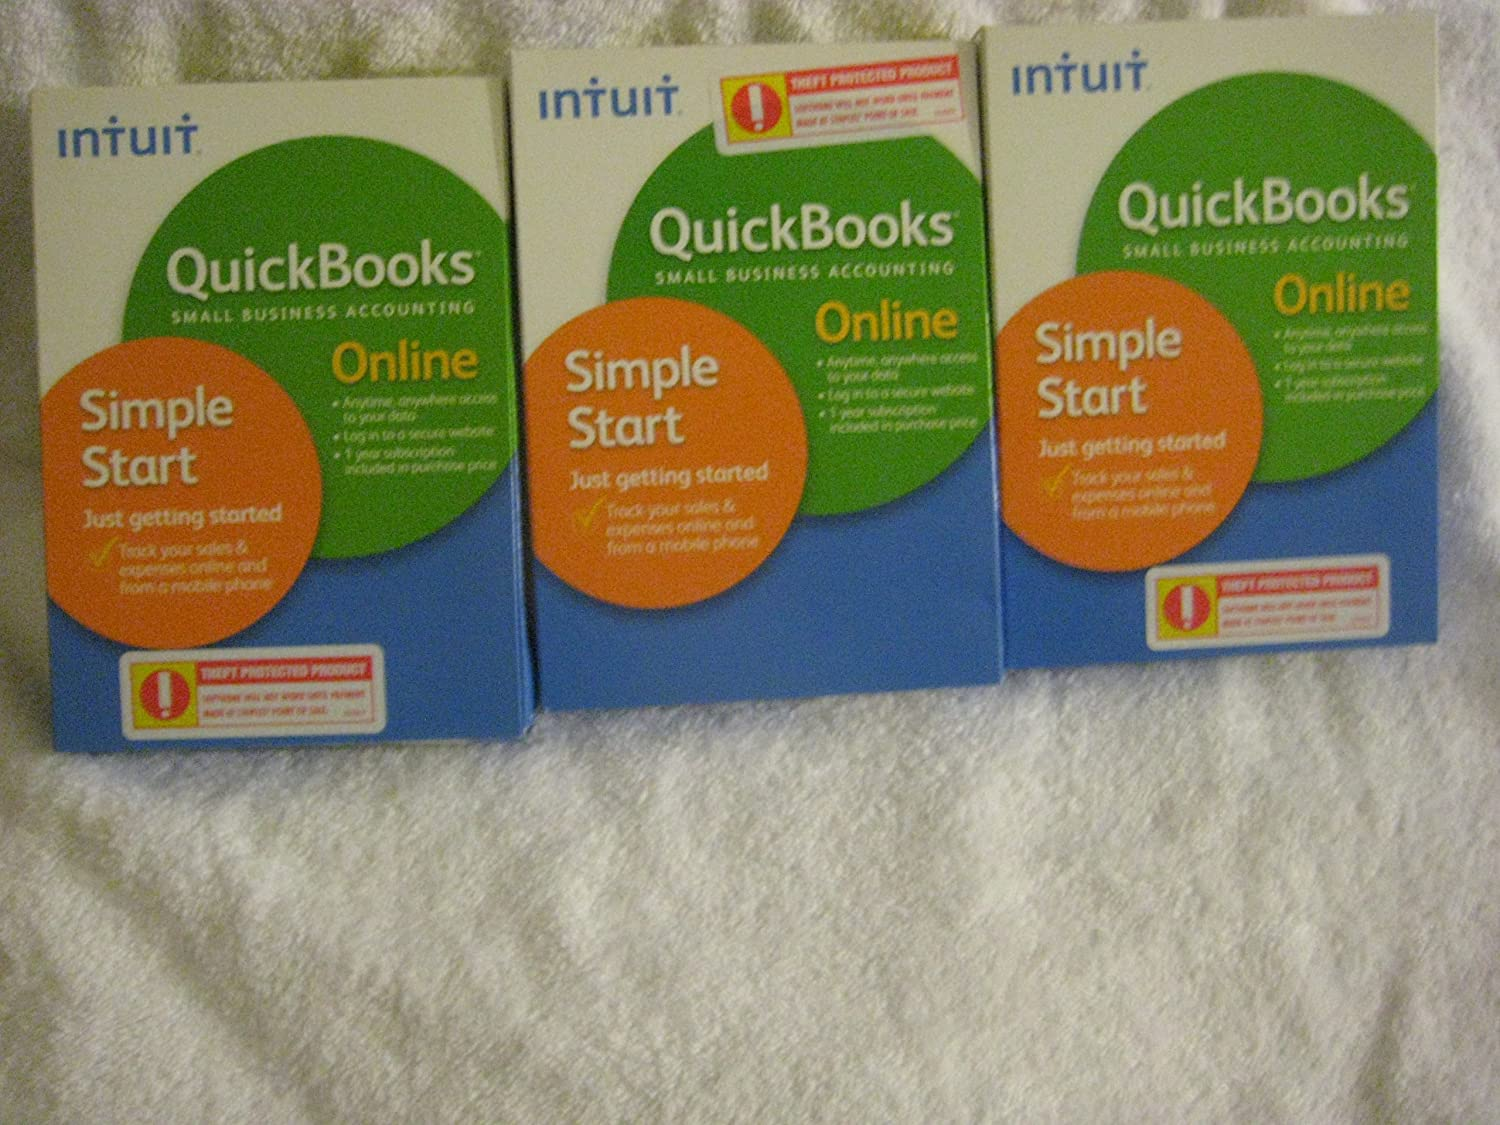 Intuit Quick Books Small Busiess Accounting Simple Smart